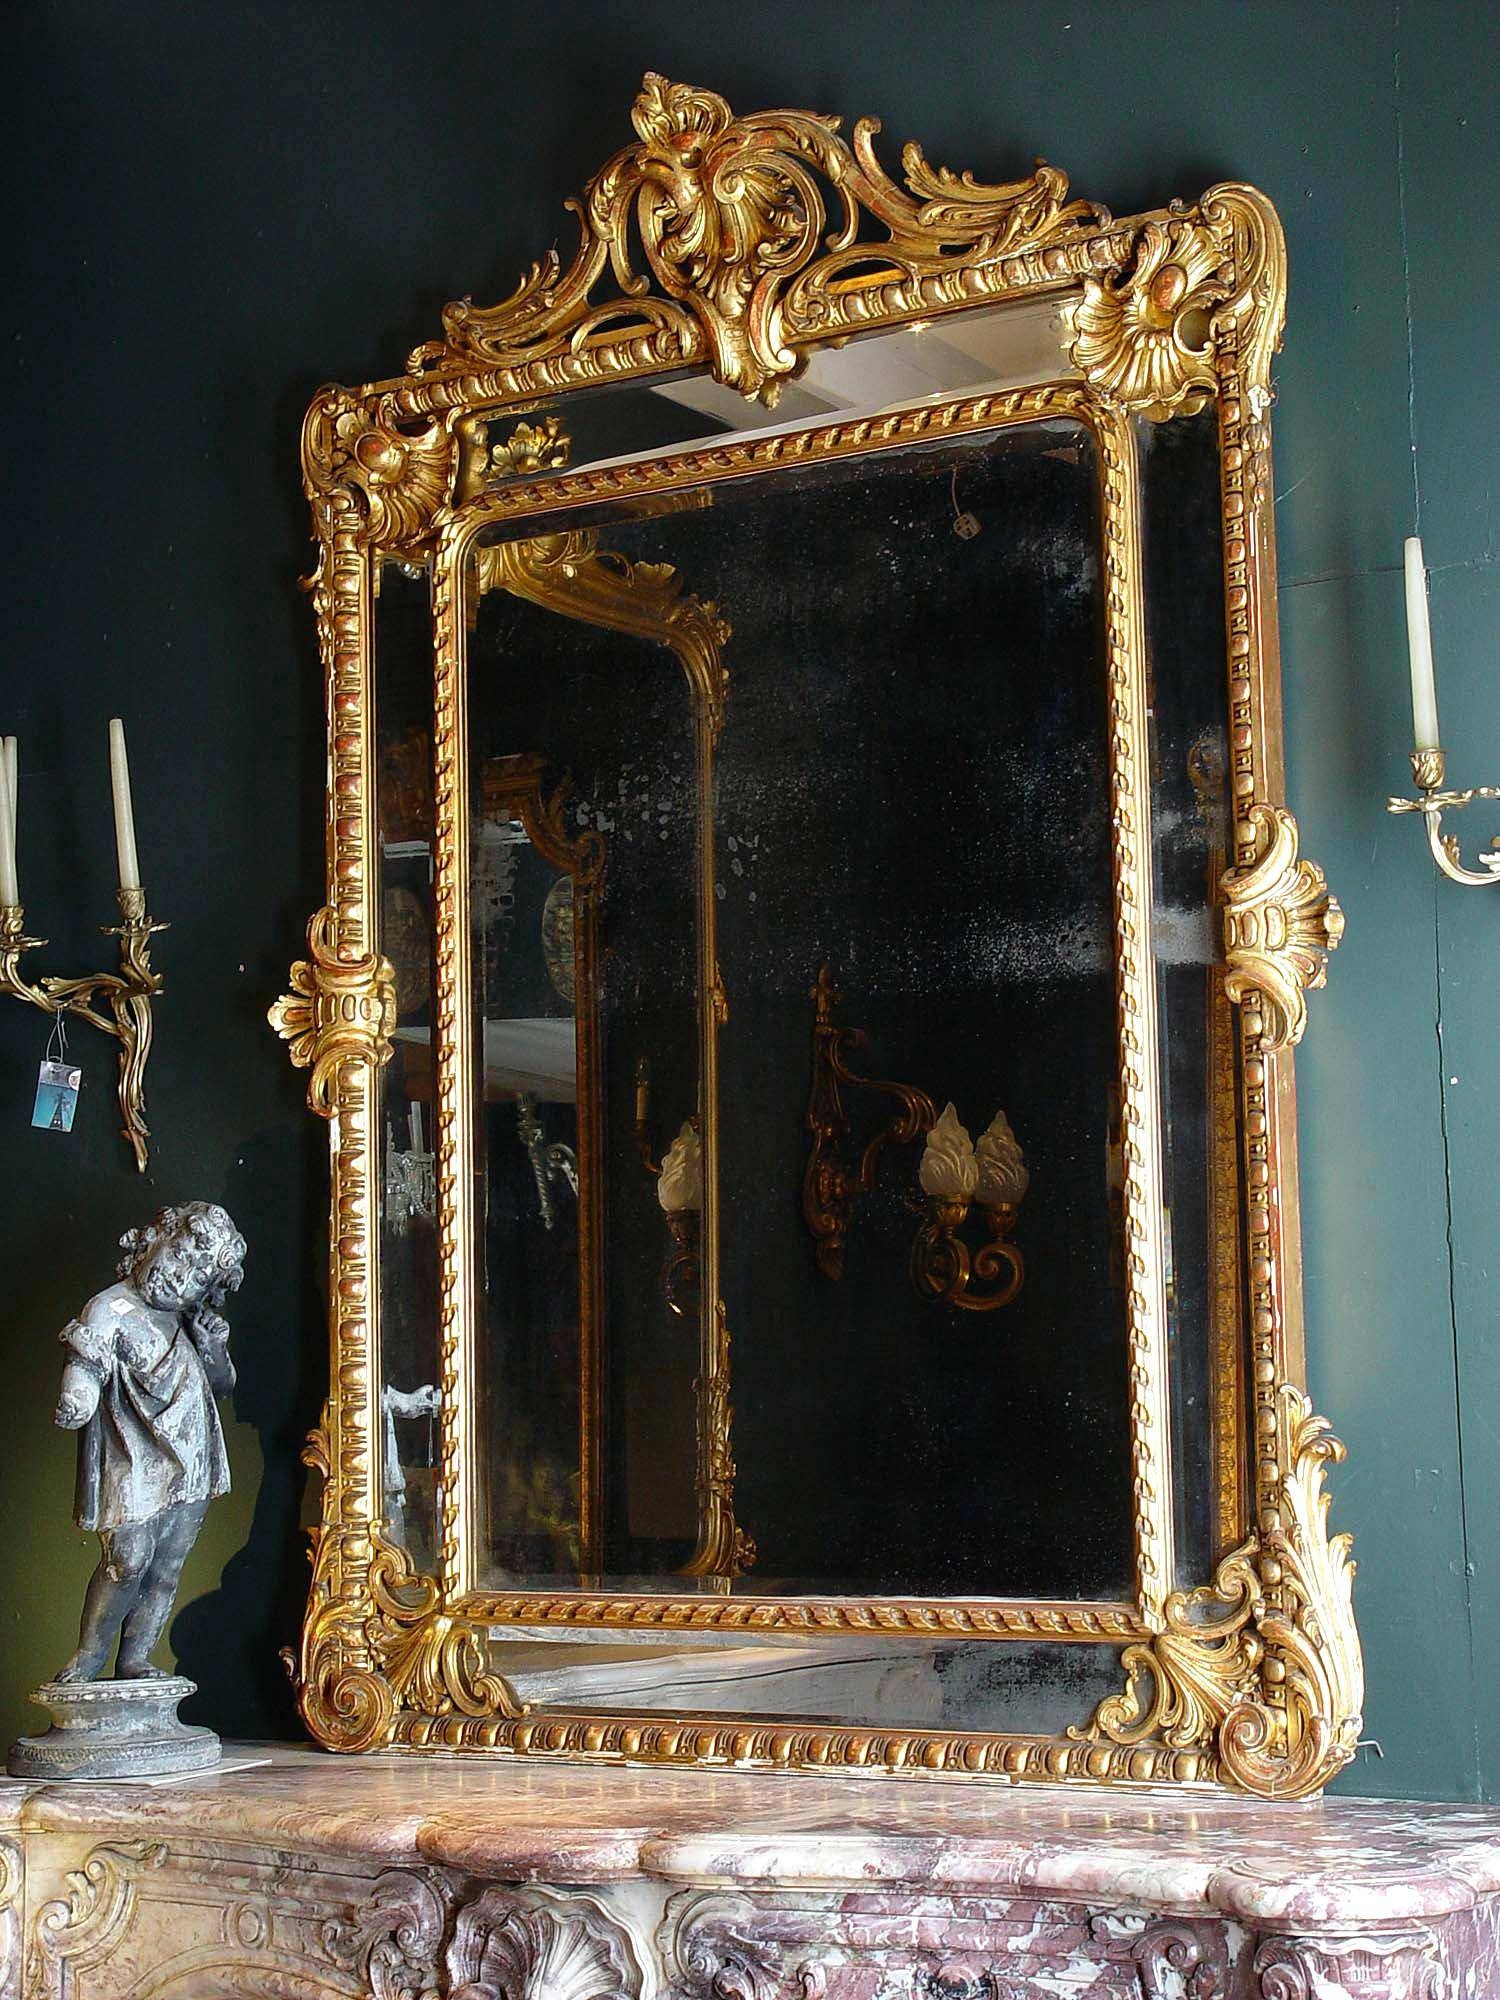 Antique French Floor Mirrorfrench Style Mirror With Shelf Wall pertaining to Large French Style Mirrors (Image 2 of 25)